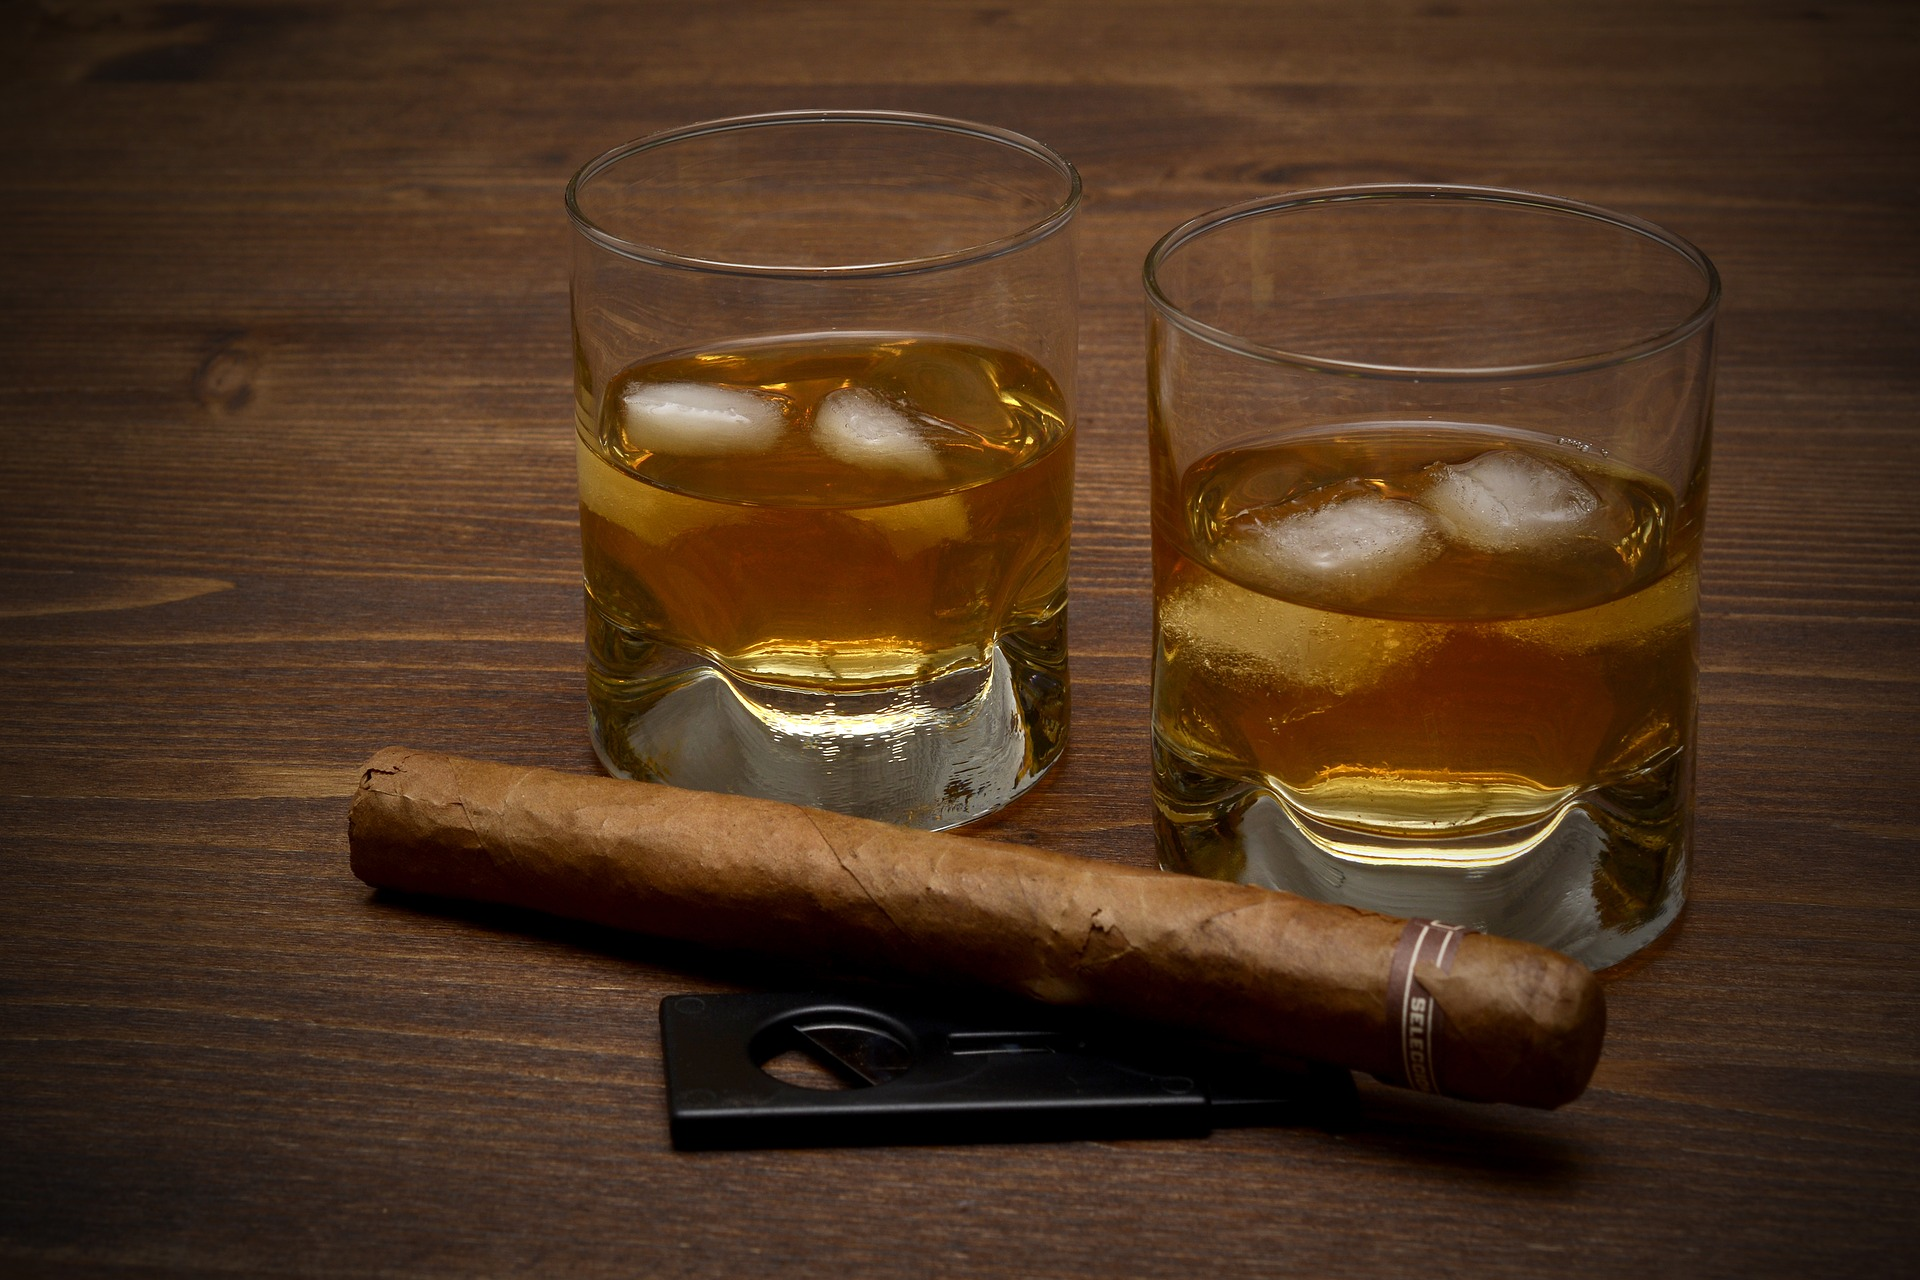 Whisky glasses and cigar